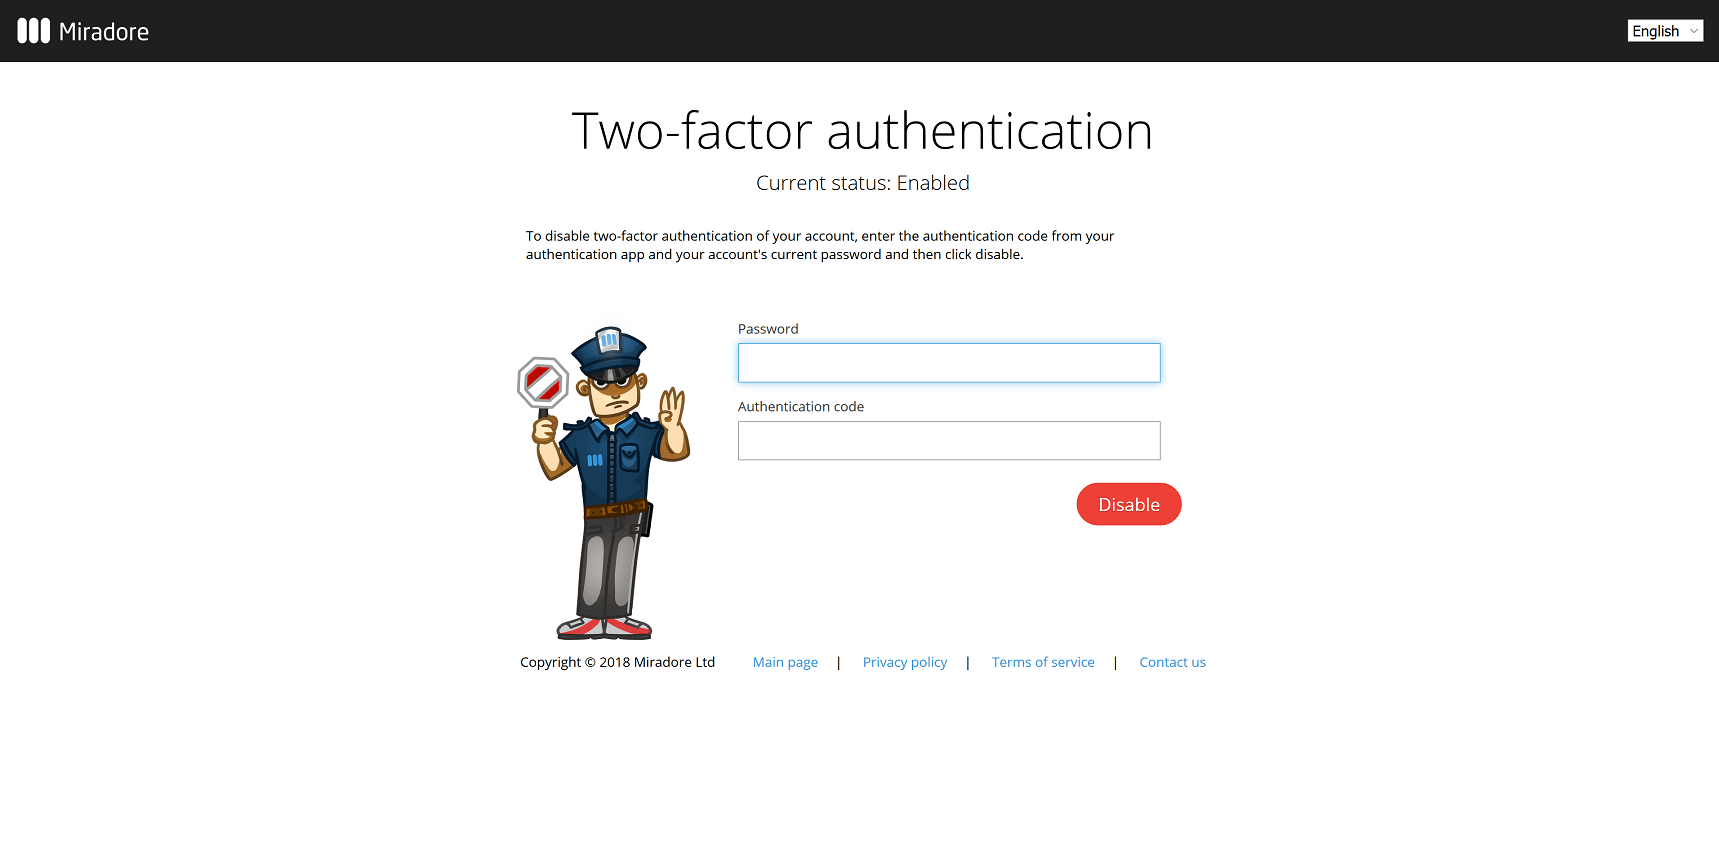 two-factor-authentication-disable-2018-09-13.png